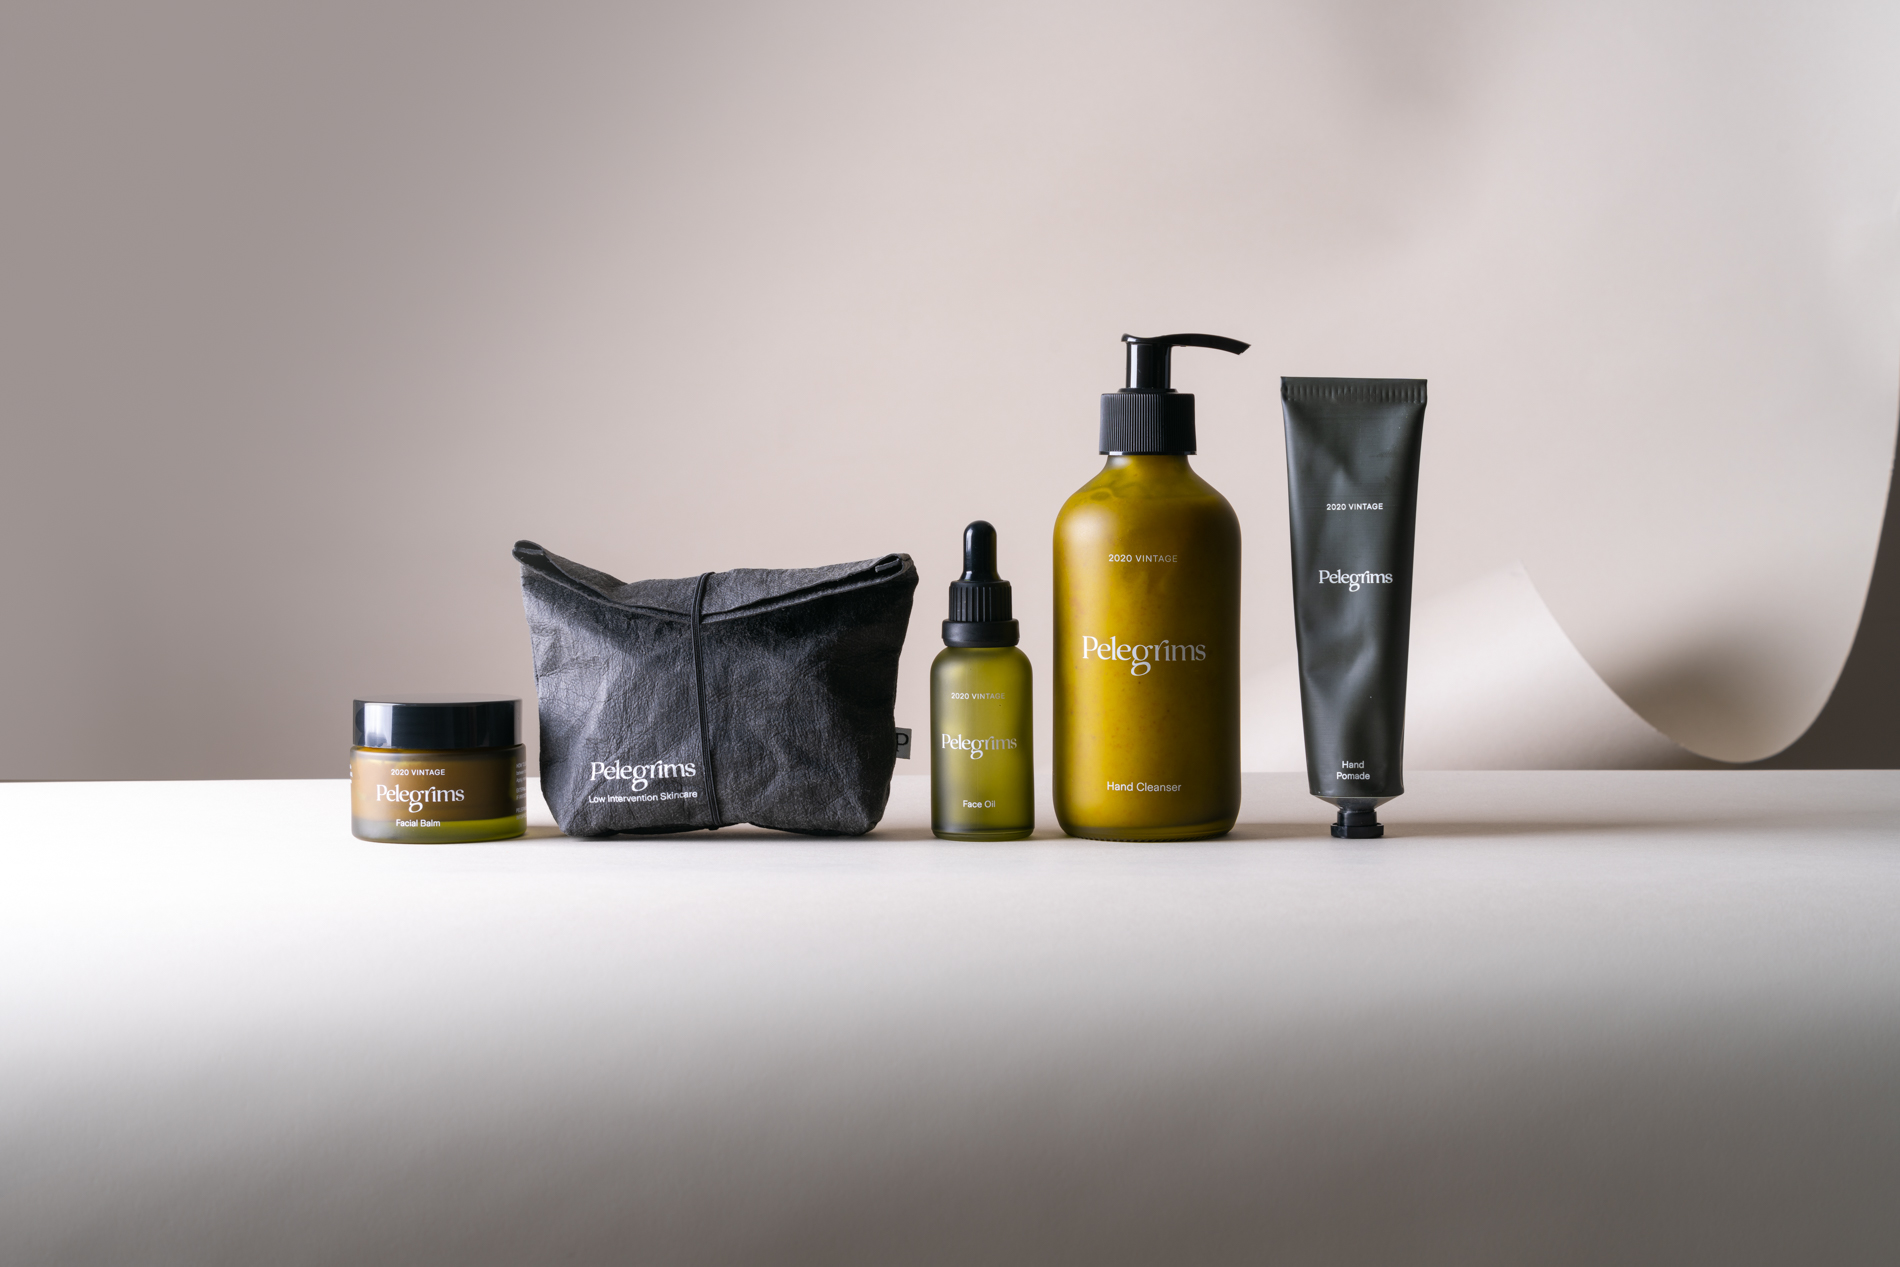 Skincare brand Pelegrims uses wine waste to create sustainable beauty products